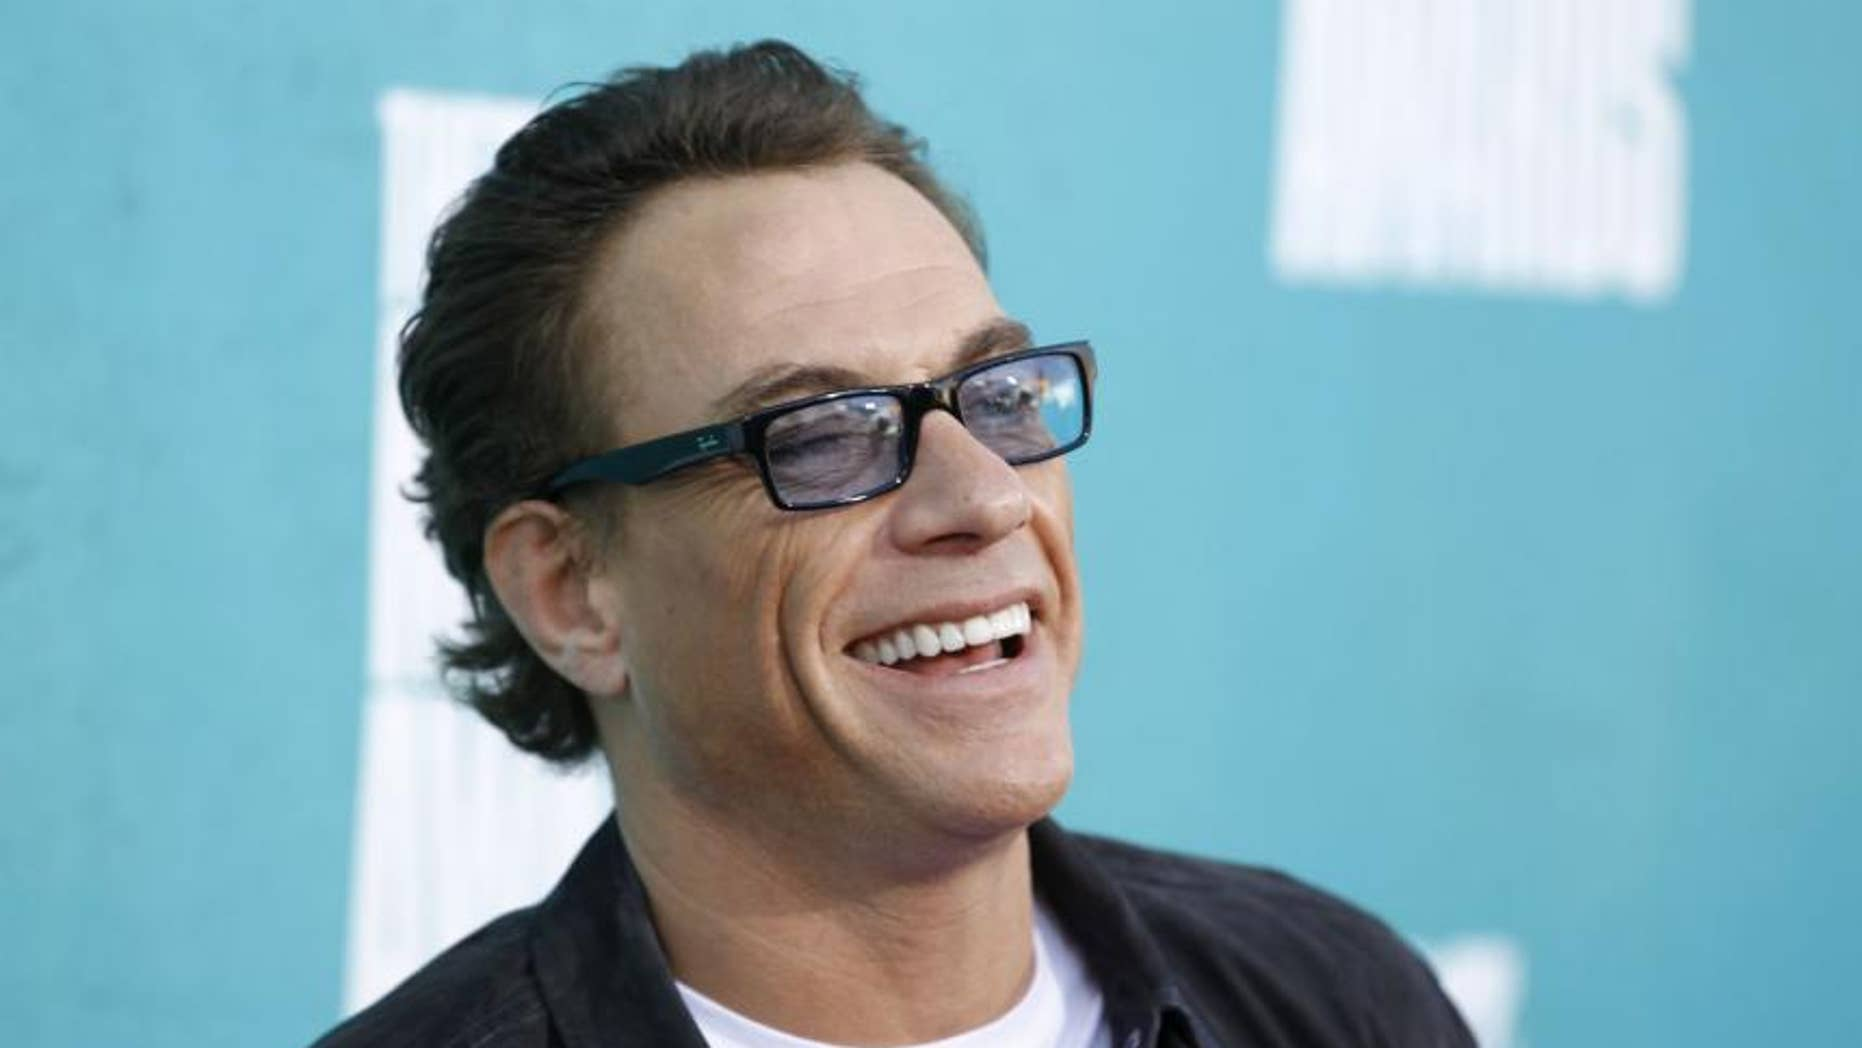 """Before he was an imposing, dreadlocked, pincer-faced creature, the Predator from """"Predator"""" was a gangly gecko-type thing with a protruding head. And he was played by Jean Claude Van Damme. Van Damme was cast as the film's antagonist in order to lend fluidity to the alien being, but he didn't like working in the suit, and apparently felt that it reduced his role to that of a stunt performer. He quit after two days of production, and director John McTiernan seized the chance to have the suit redesigned. Former basketball player Kevin Peter Hall was then hired for the title role."""